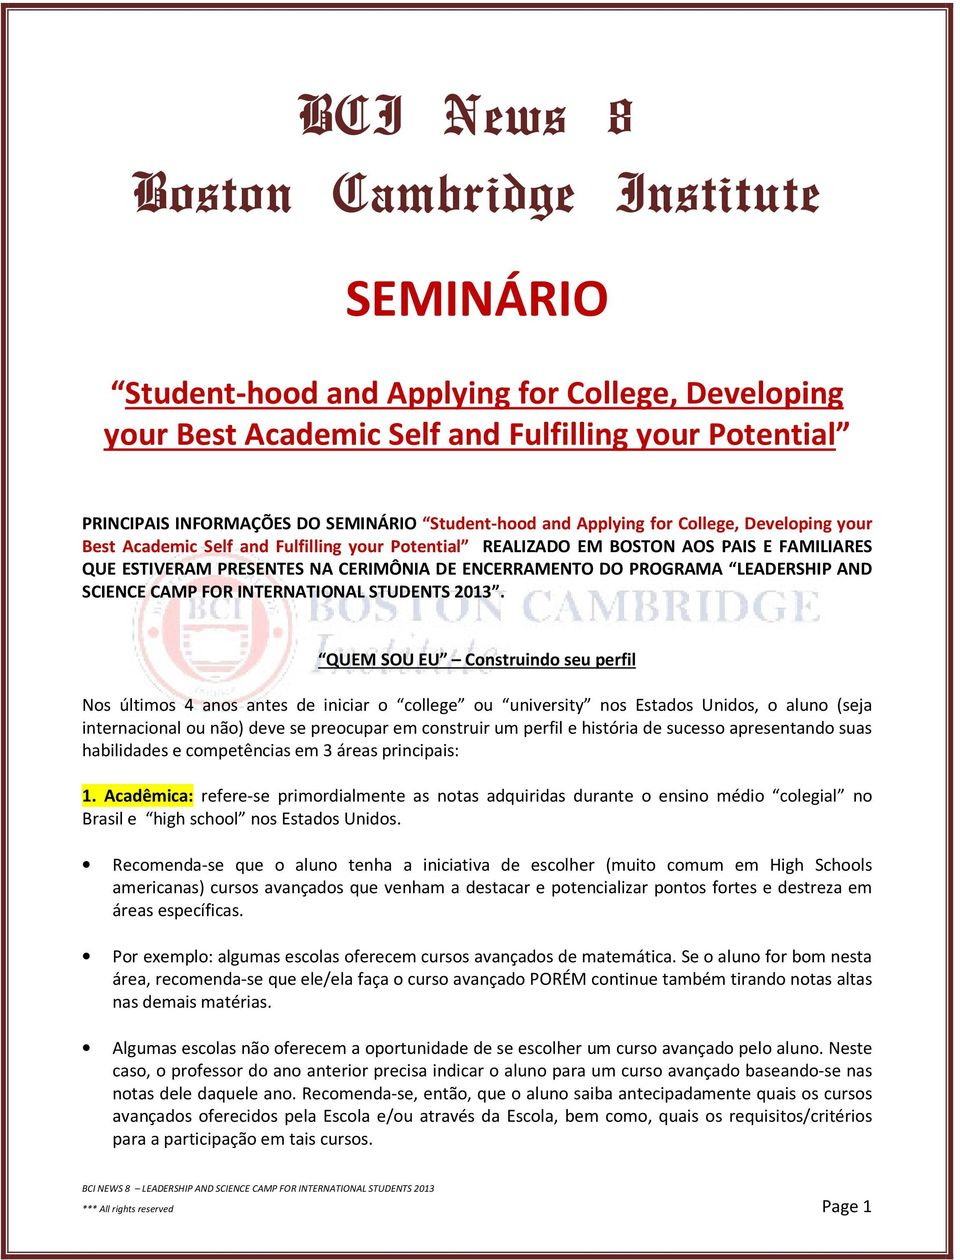 DO PROGRAMA LEADERSHIP AND SCIENCE CAMP FOR INTERNATIONAL STUDENTS 2013.